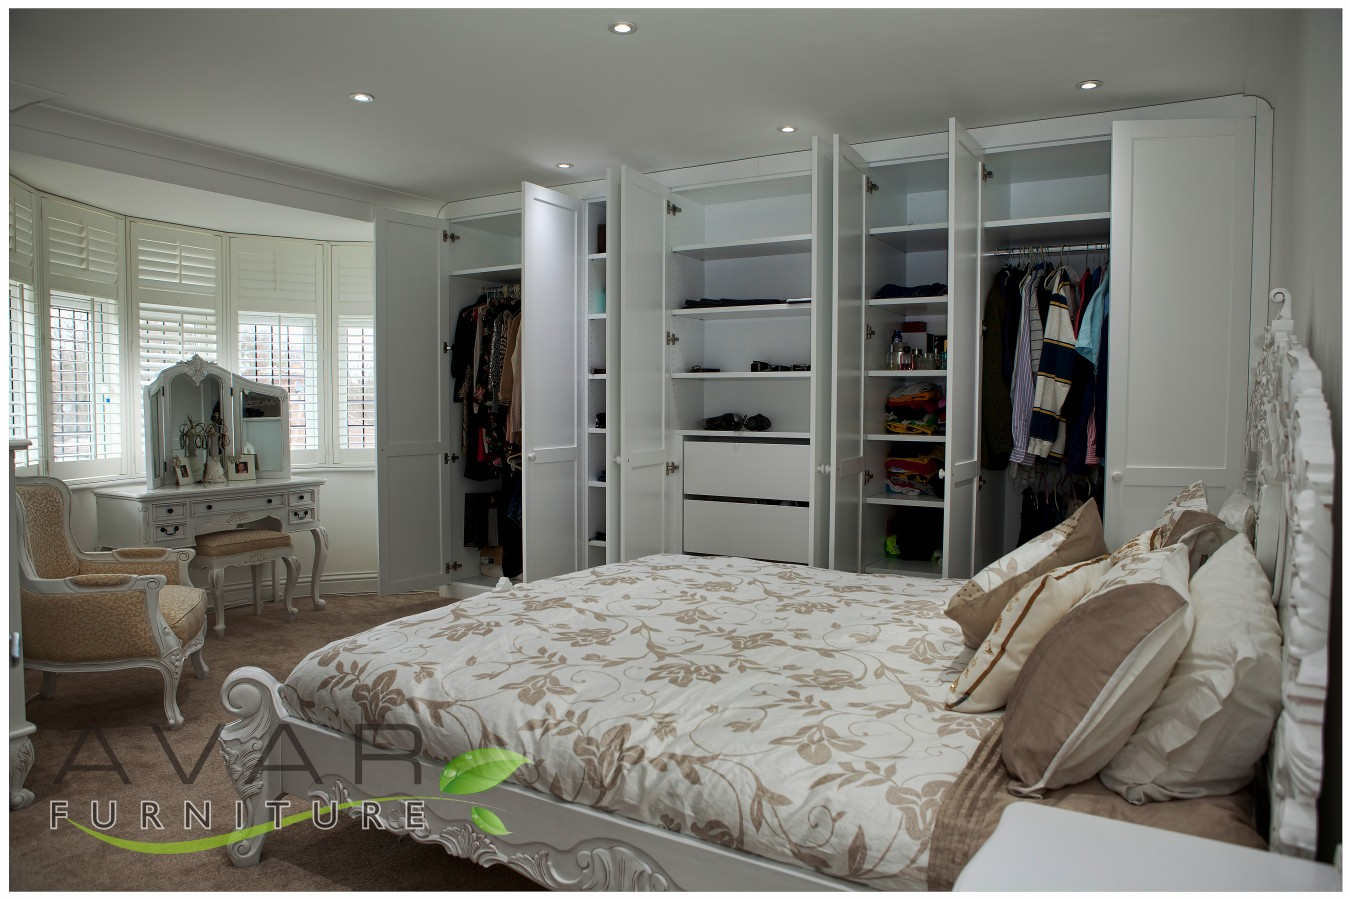 u01b8 u04dc u01b7 fitted wardrobe ideas    gallery 7